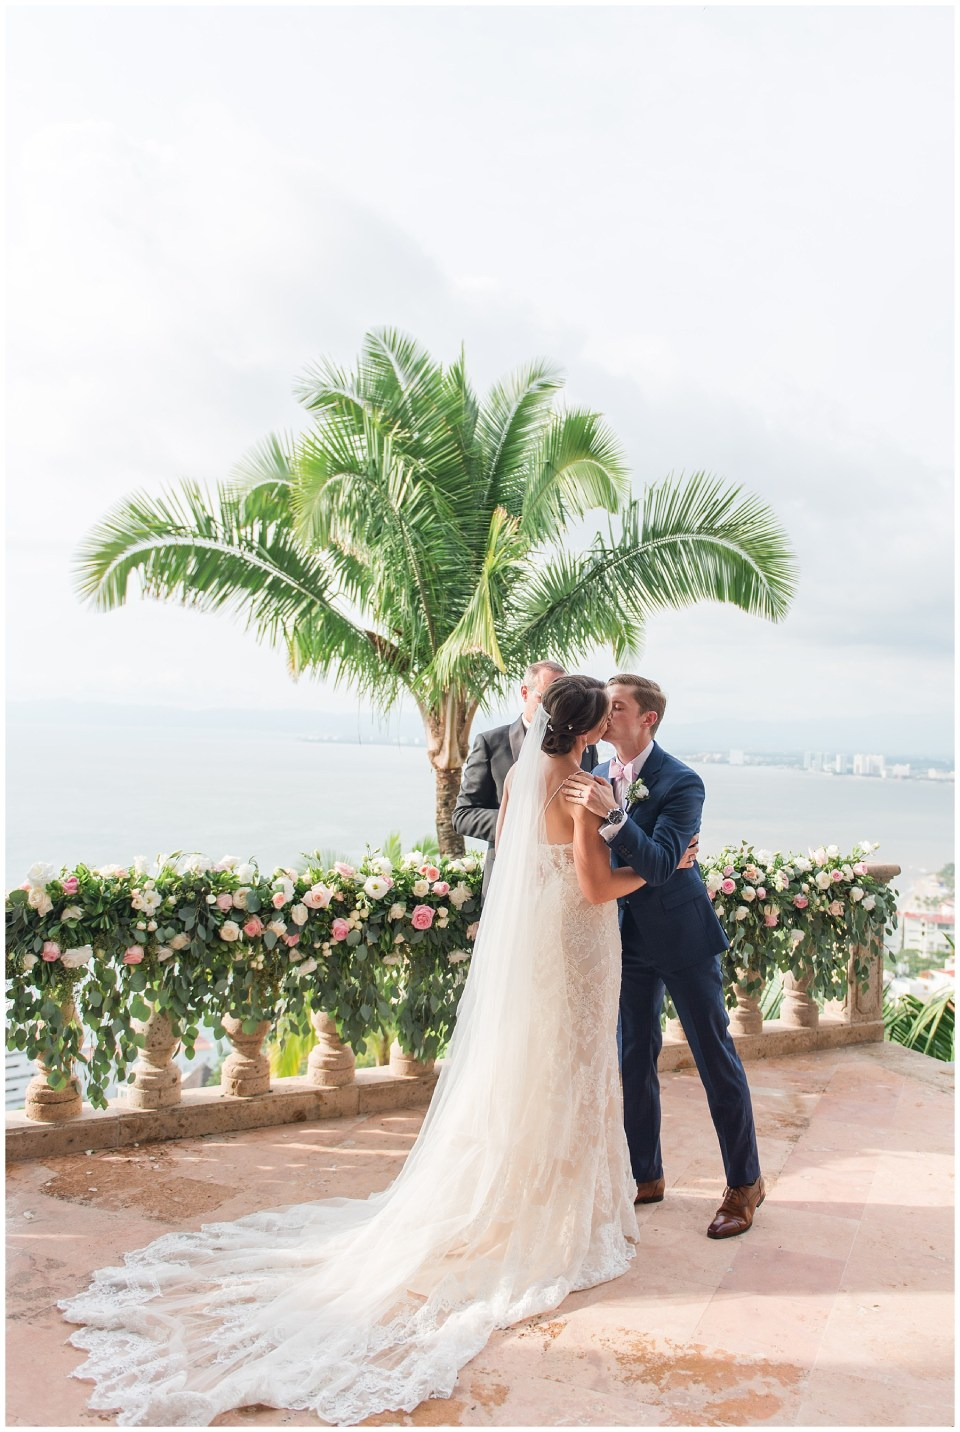 dc-destination-wedding-photographer-puerto-vallarta-mexico-wedding-photo-68_photos.jpg